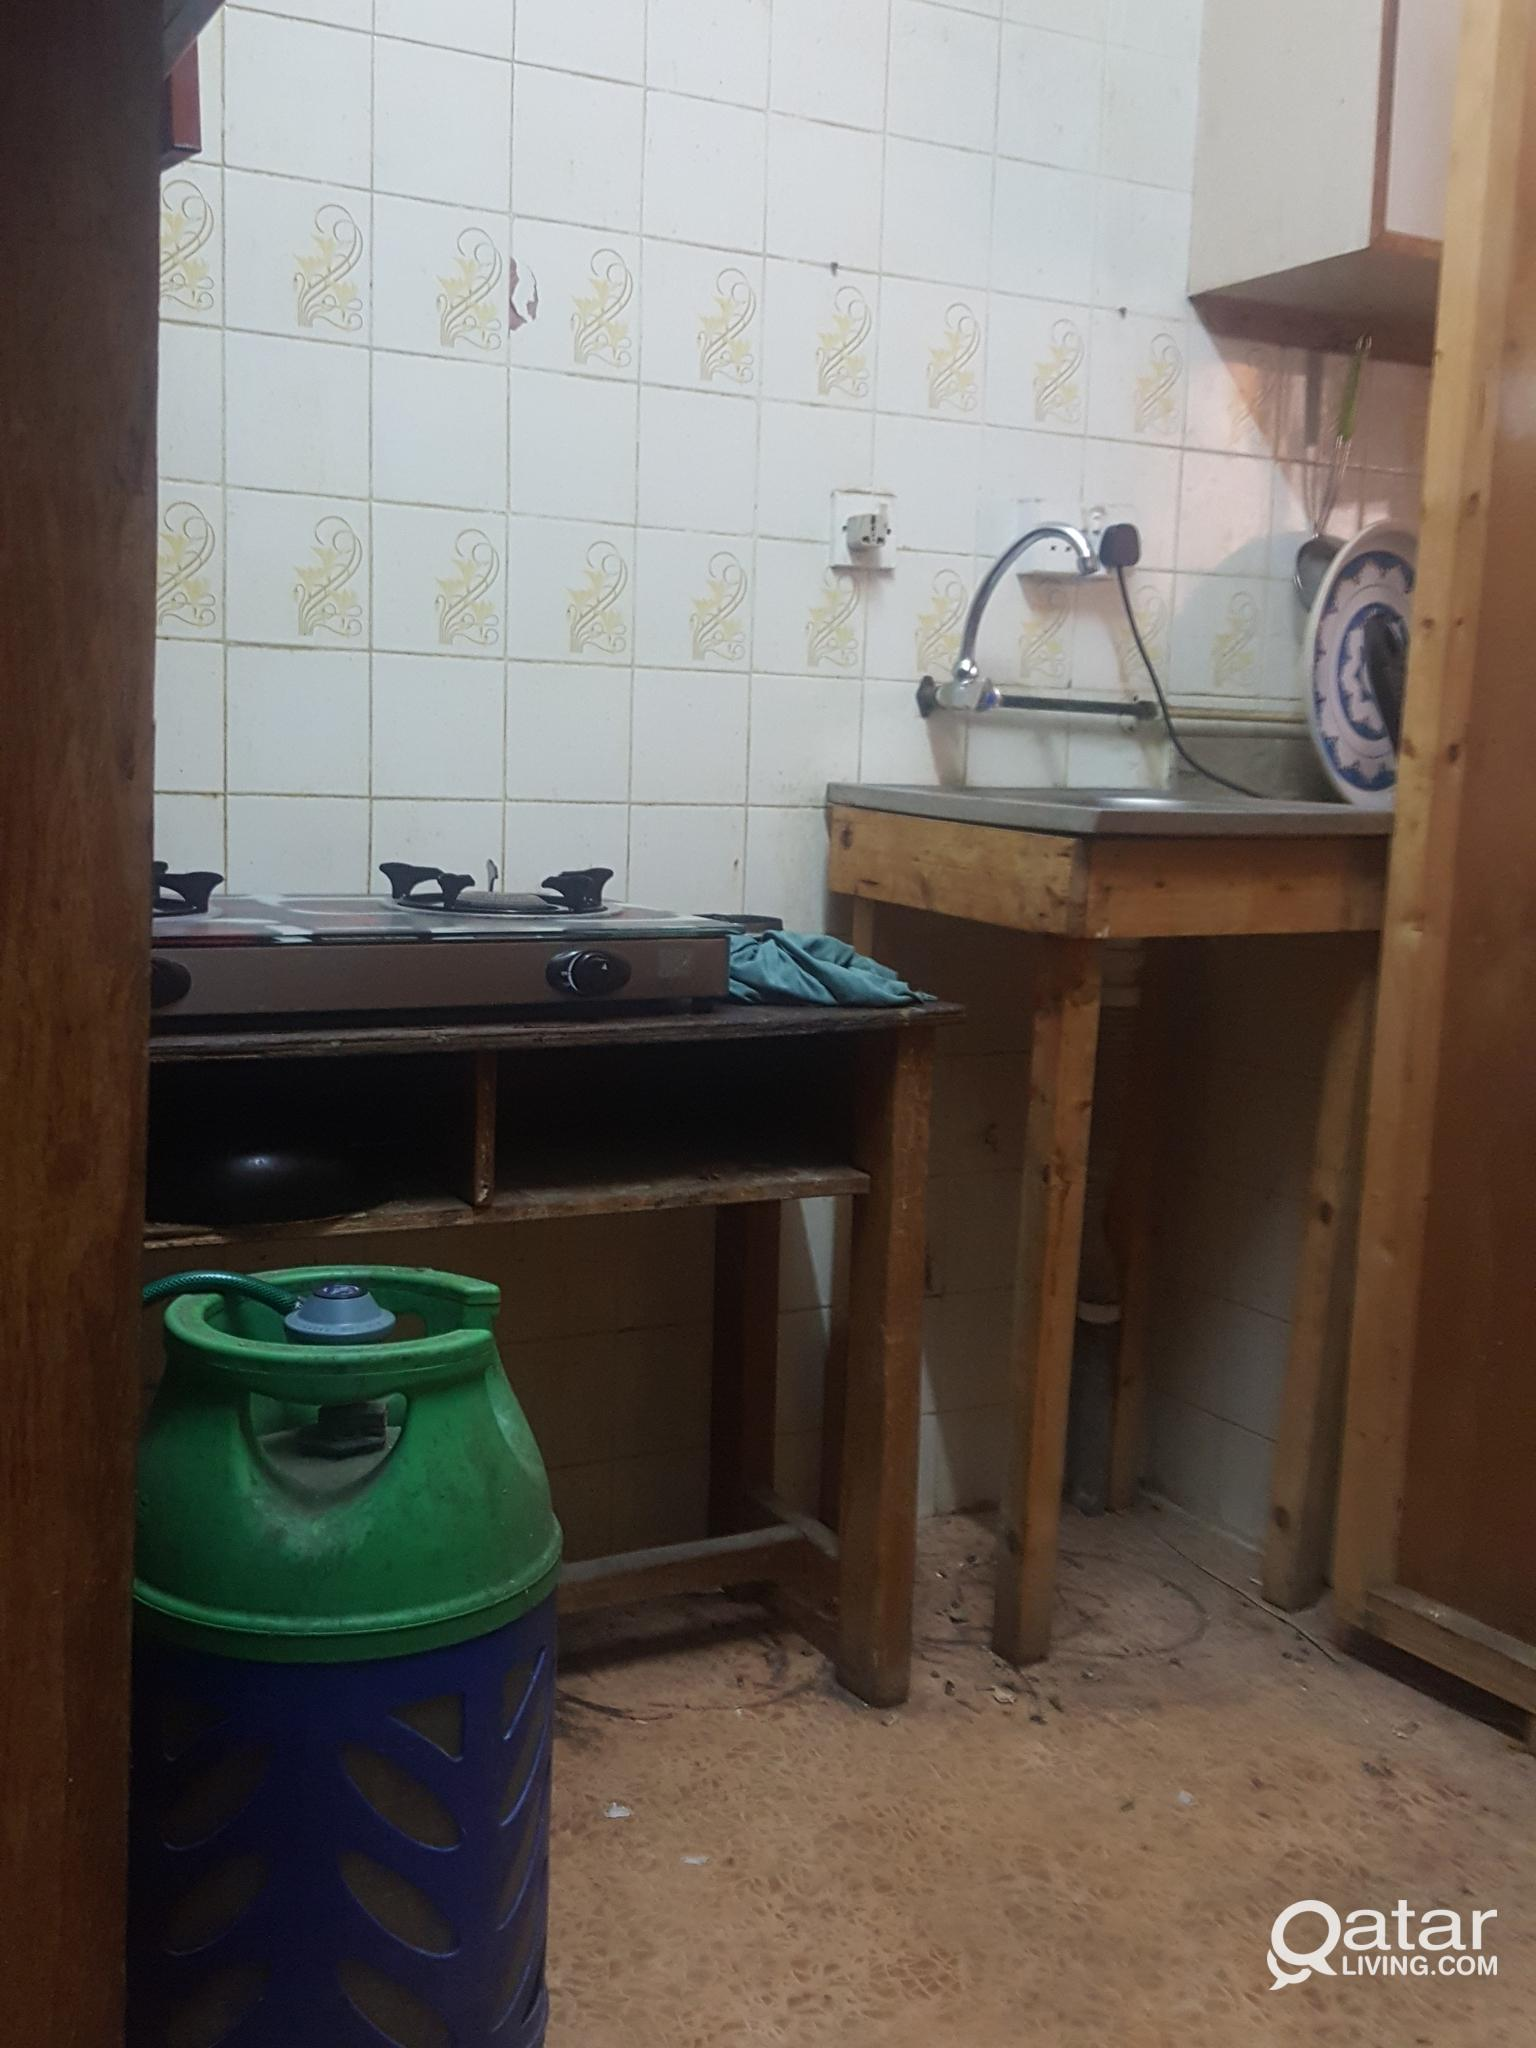 One room with shared kitchen and bathroom availabl